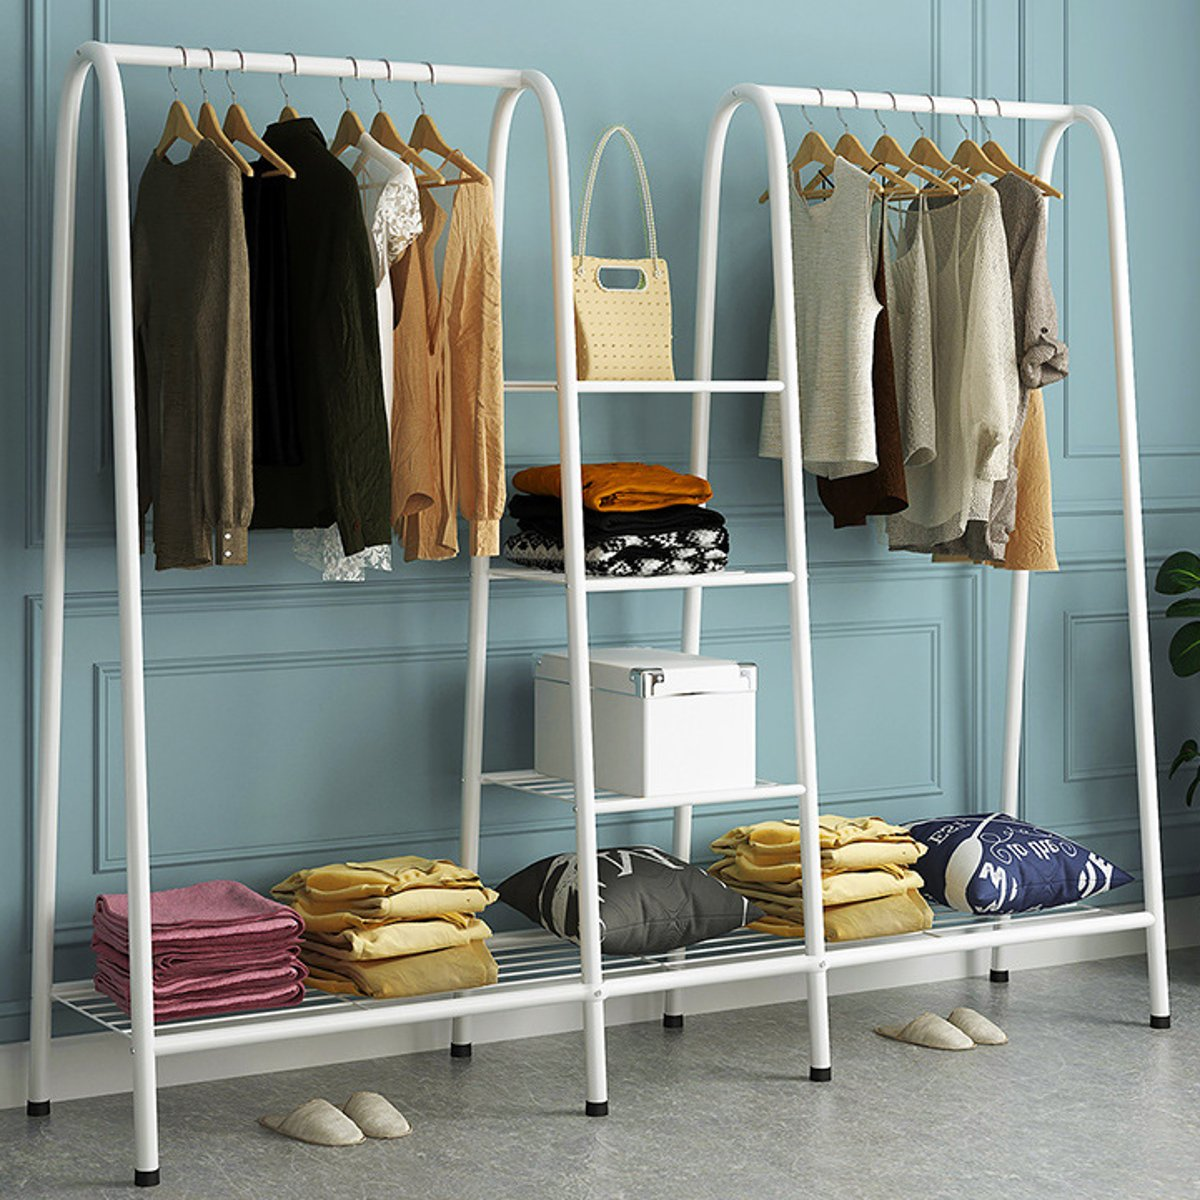 Coat Rack Metal Iron Clothing Rack Garment font b Closet b font Organizer Storage Shelf Clothes